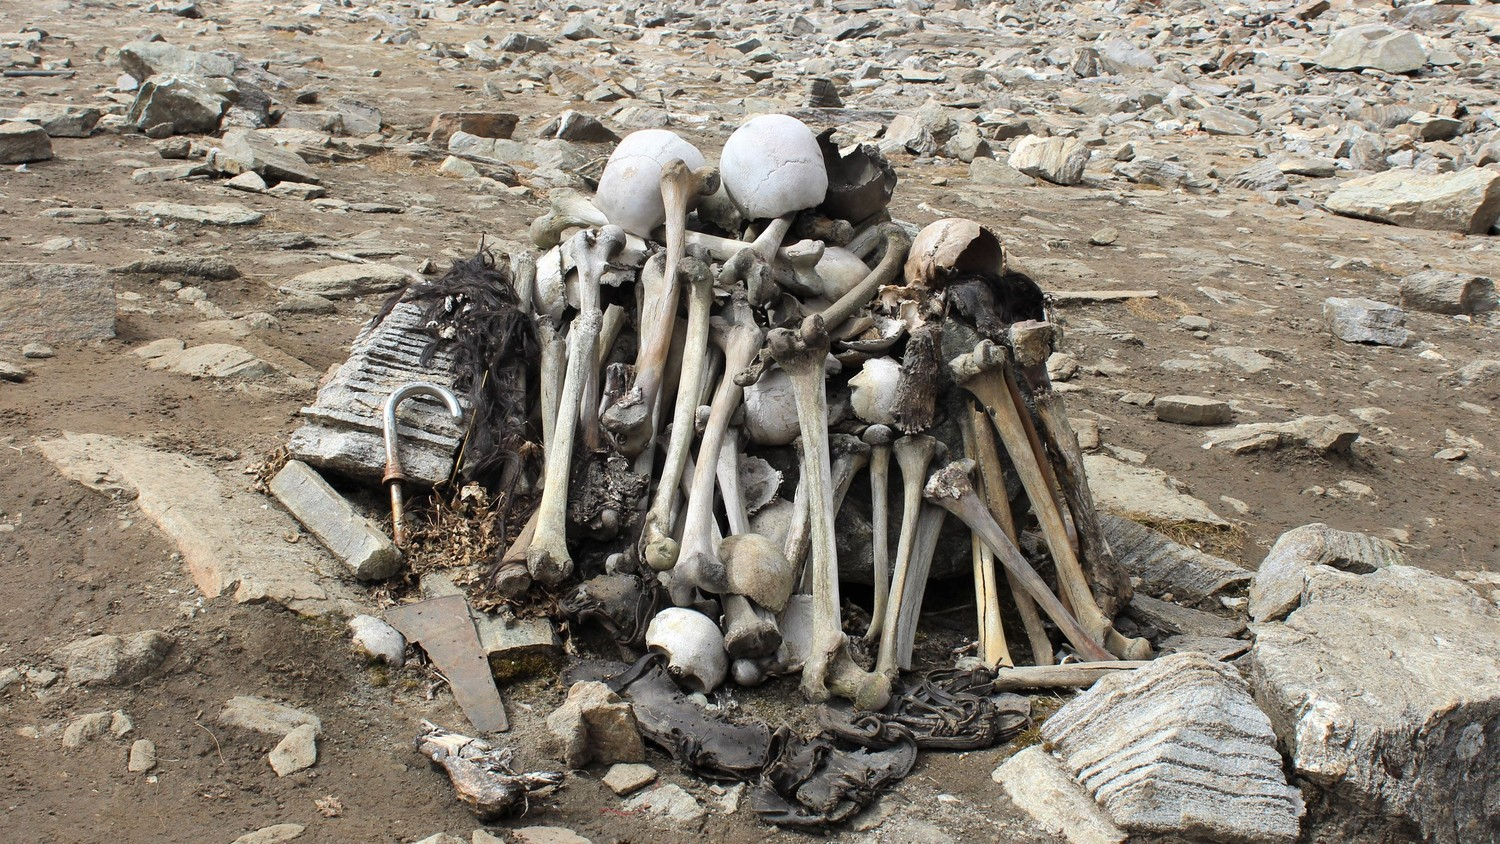 Analysis of human skeletons found near lake Himalayan puzzles scientists